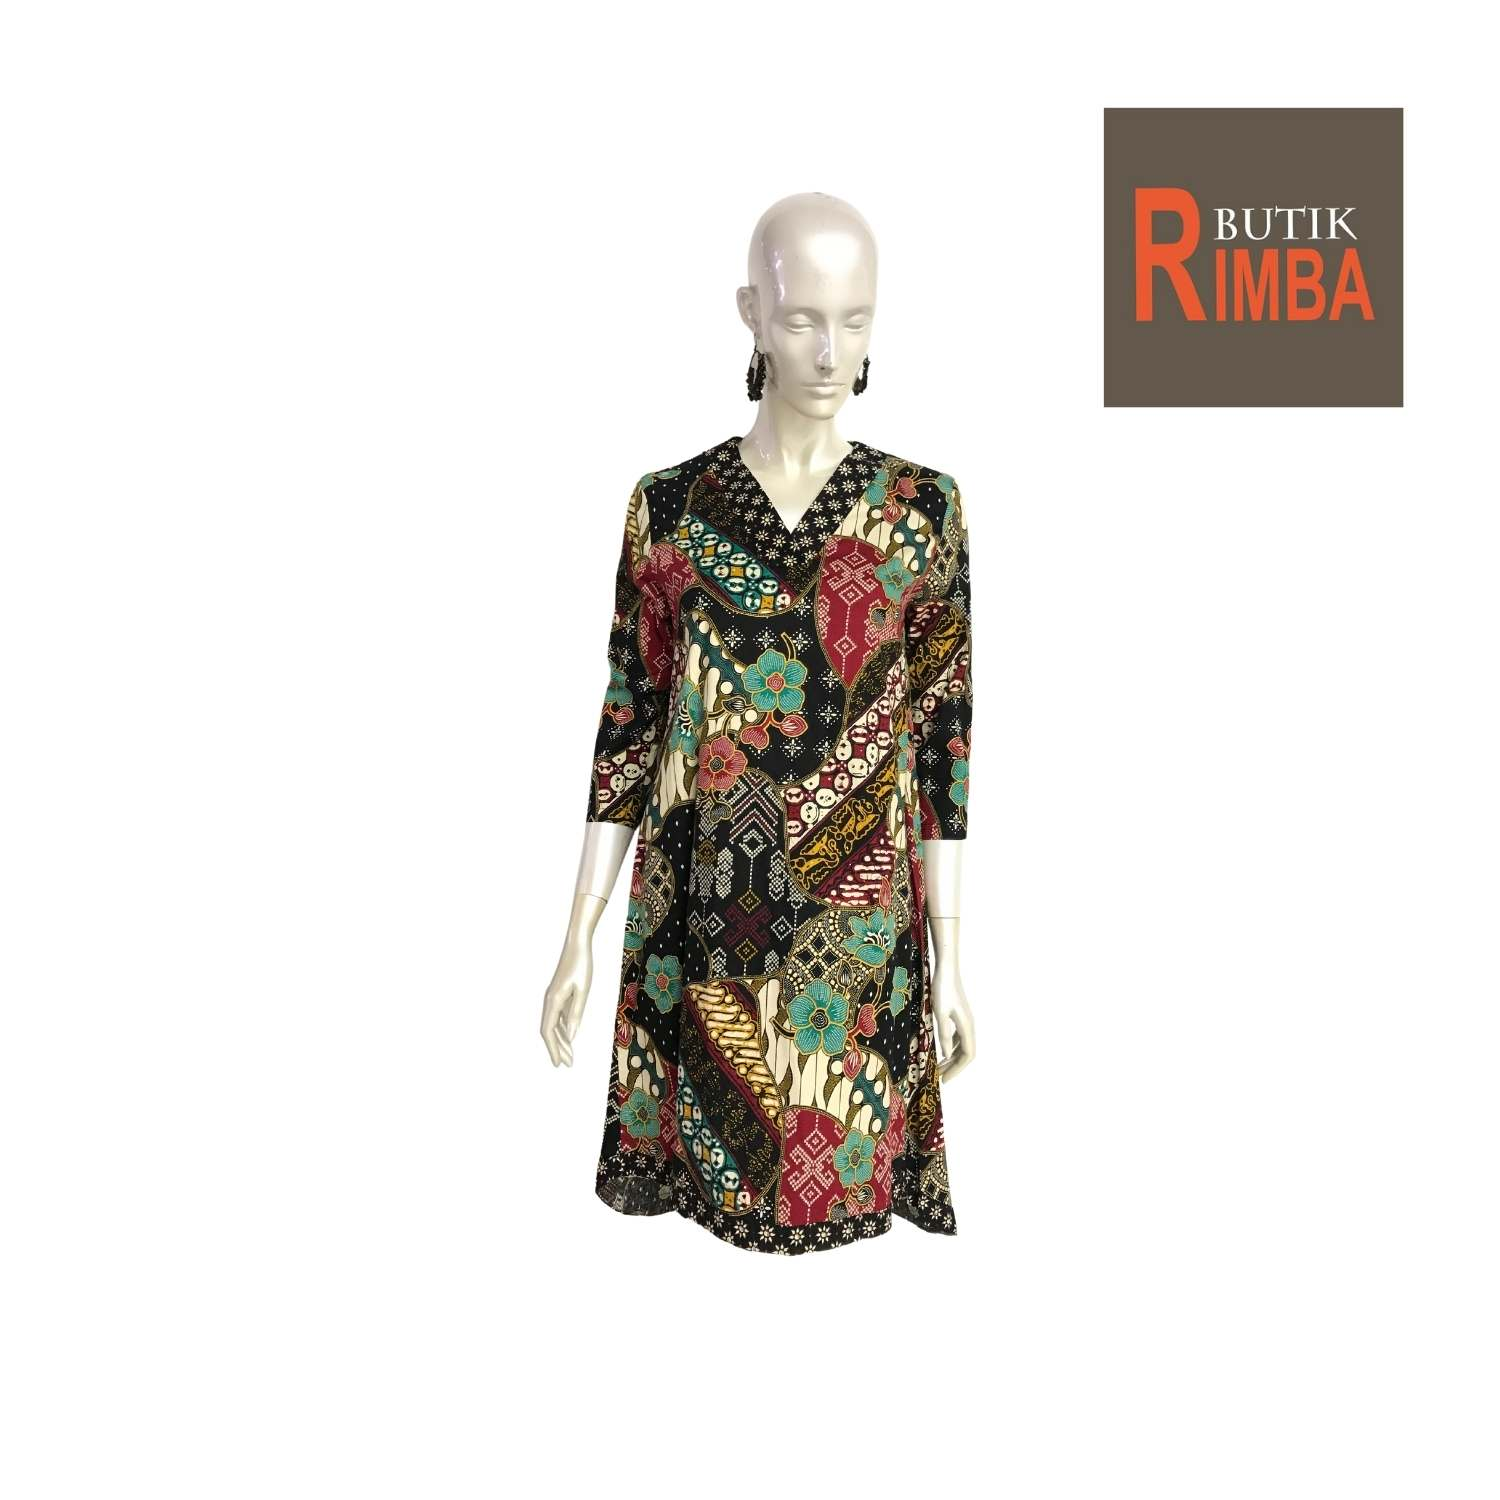 MODERN DRESS BATIK COTTON STRETCHABLE KNEE LENGTH FREE SIZE FOR FASHIONABLE WOMEN IN MIND 08